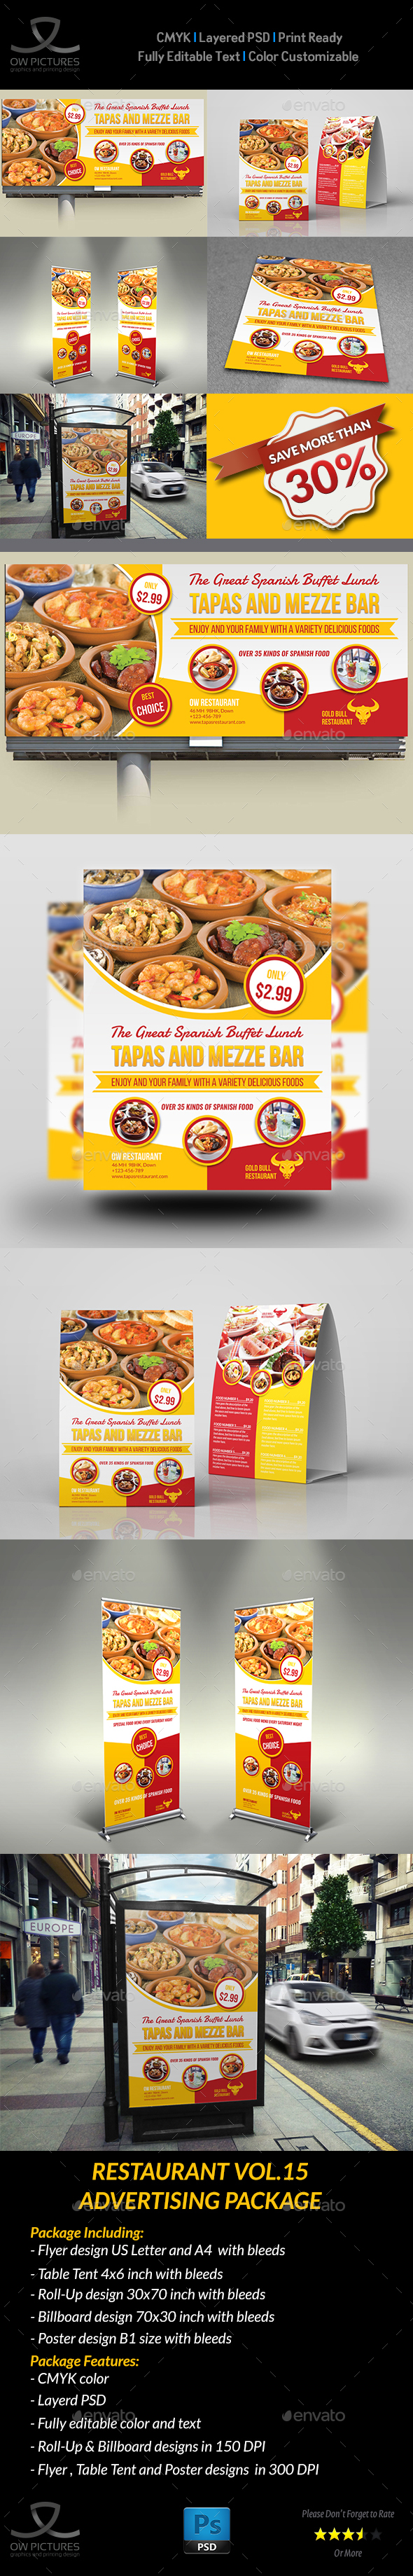 Restaurant Advertising Bundle Vol.15 - Signage Print Templates